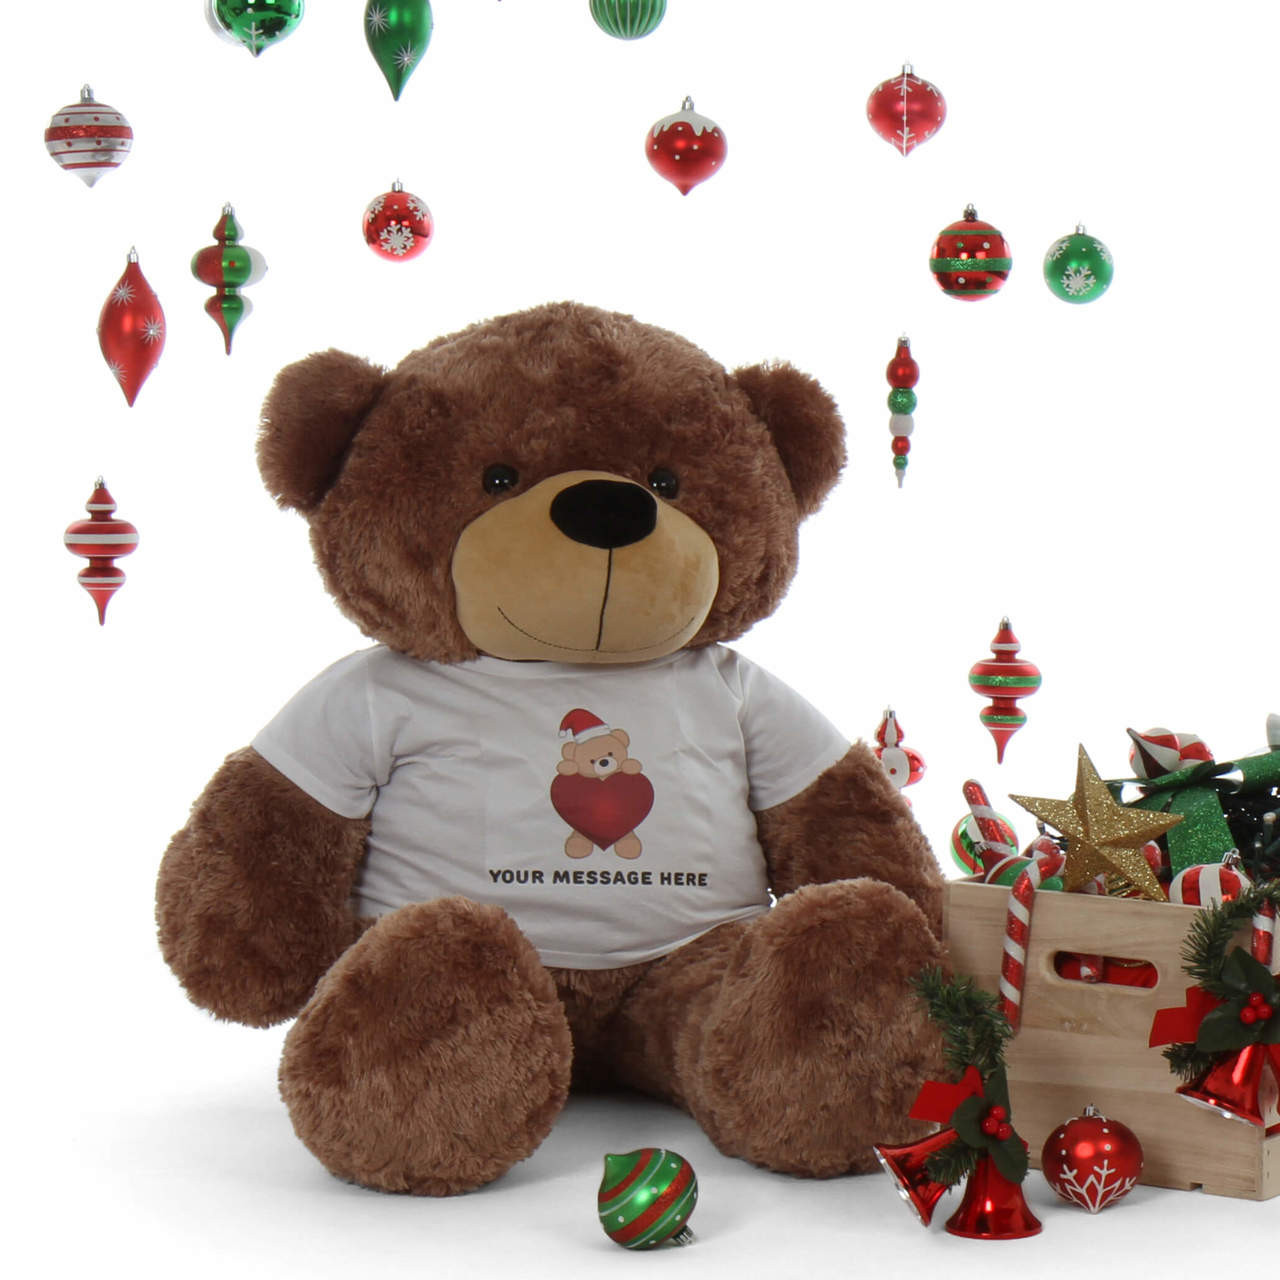 48in life size Personalized shirt huggable Christmas Teddy Bear Mocha Sunny Cuddles gift